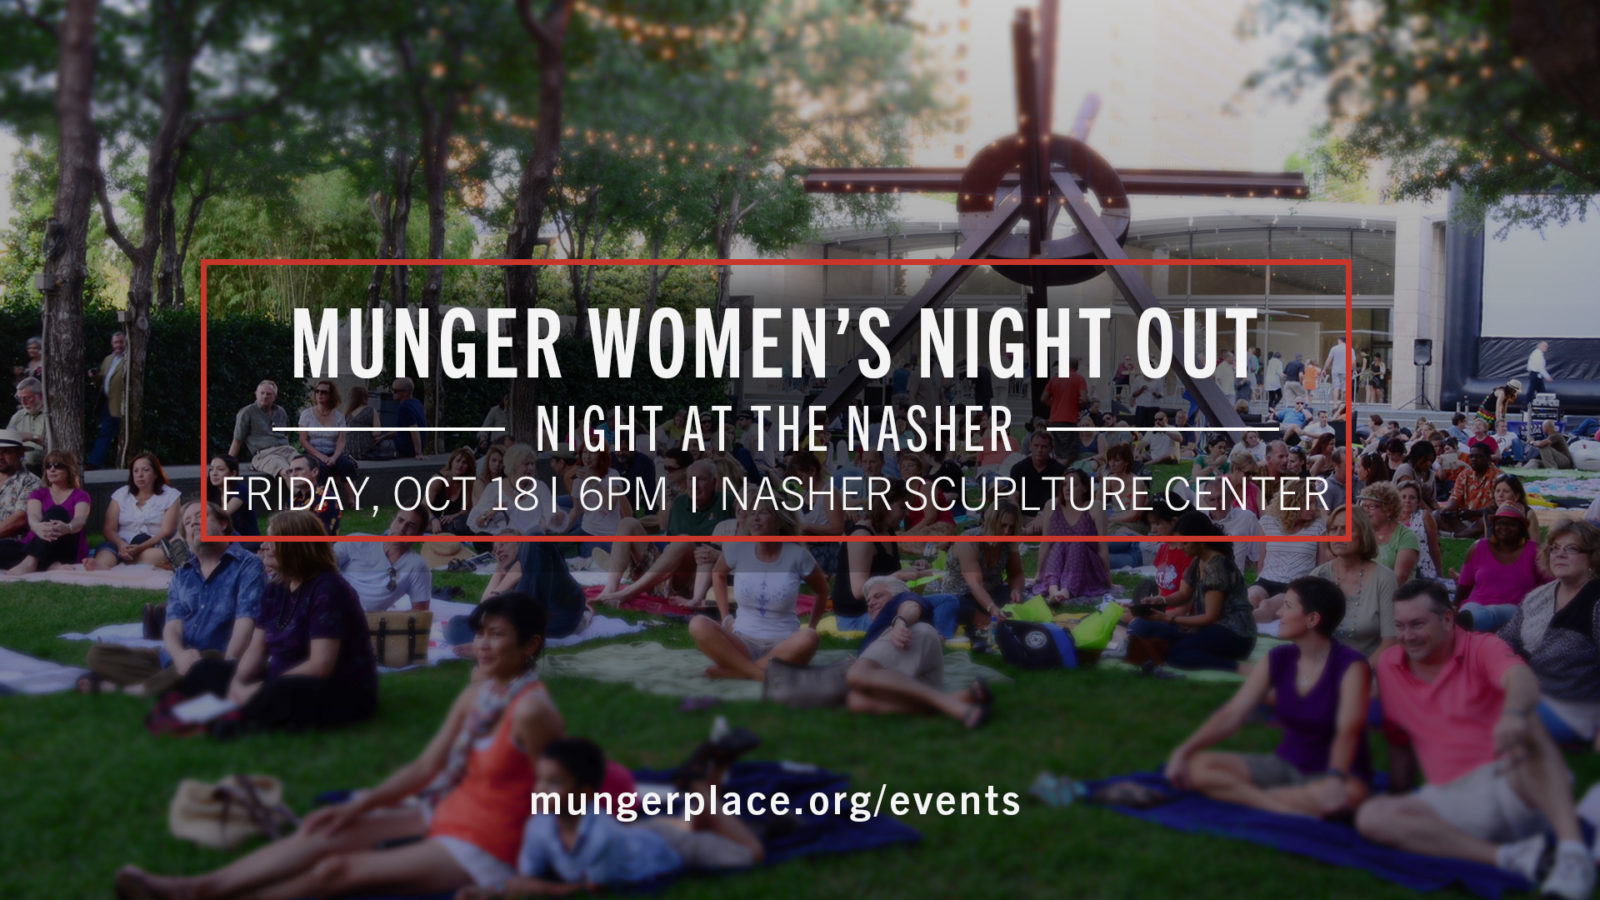 Munger Women's Night Out @ The Nasher